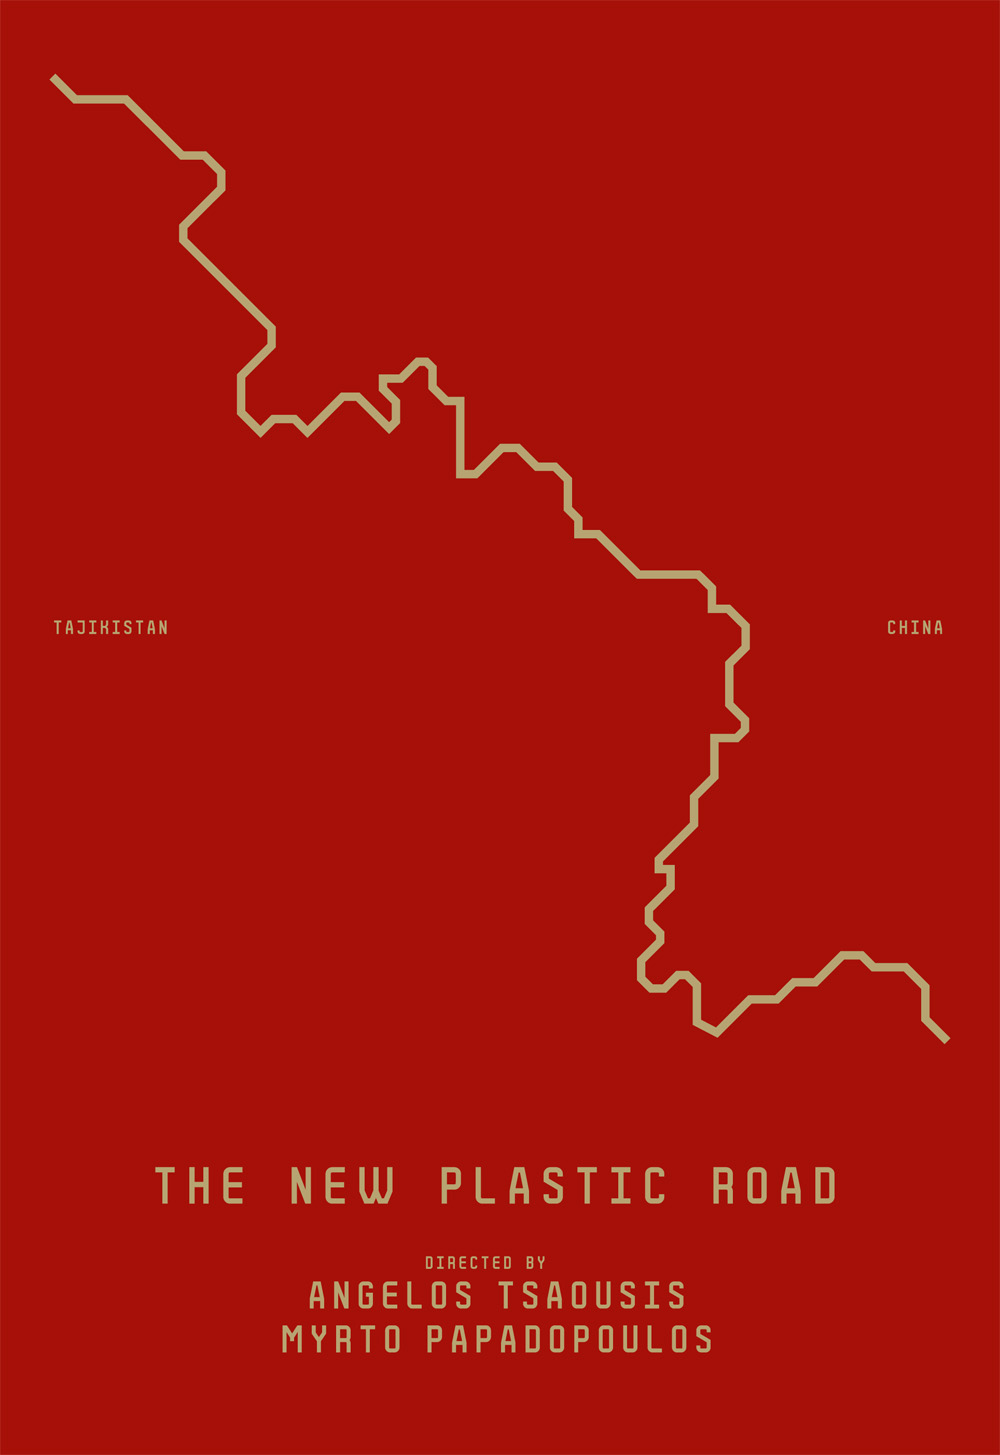 The New Plastic Road